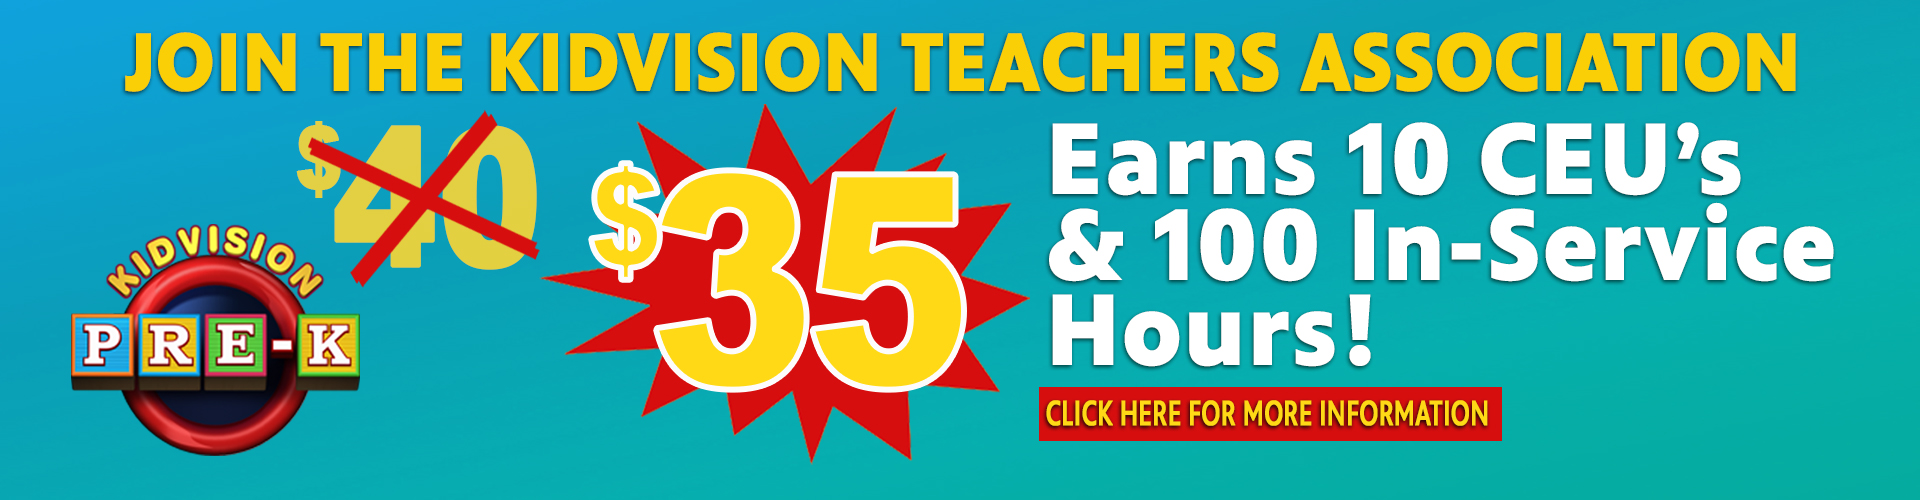 Teachers Association Discount